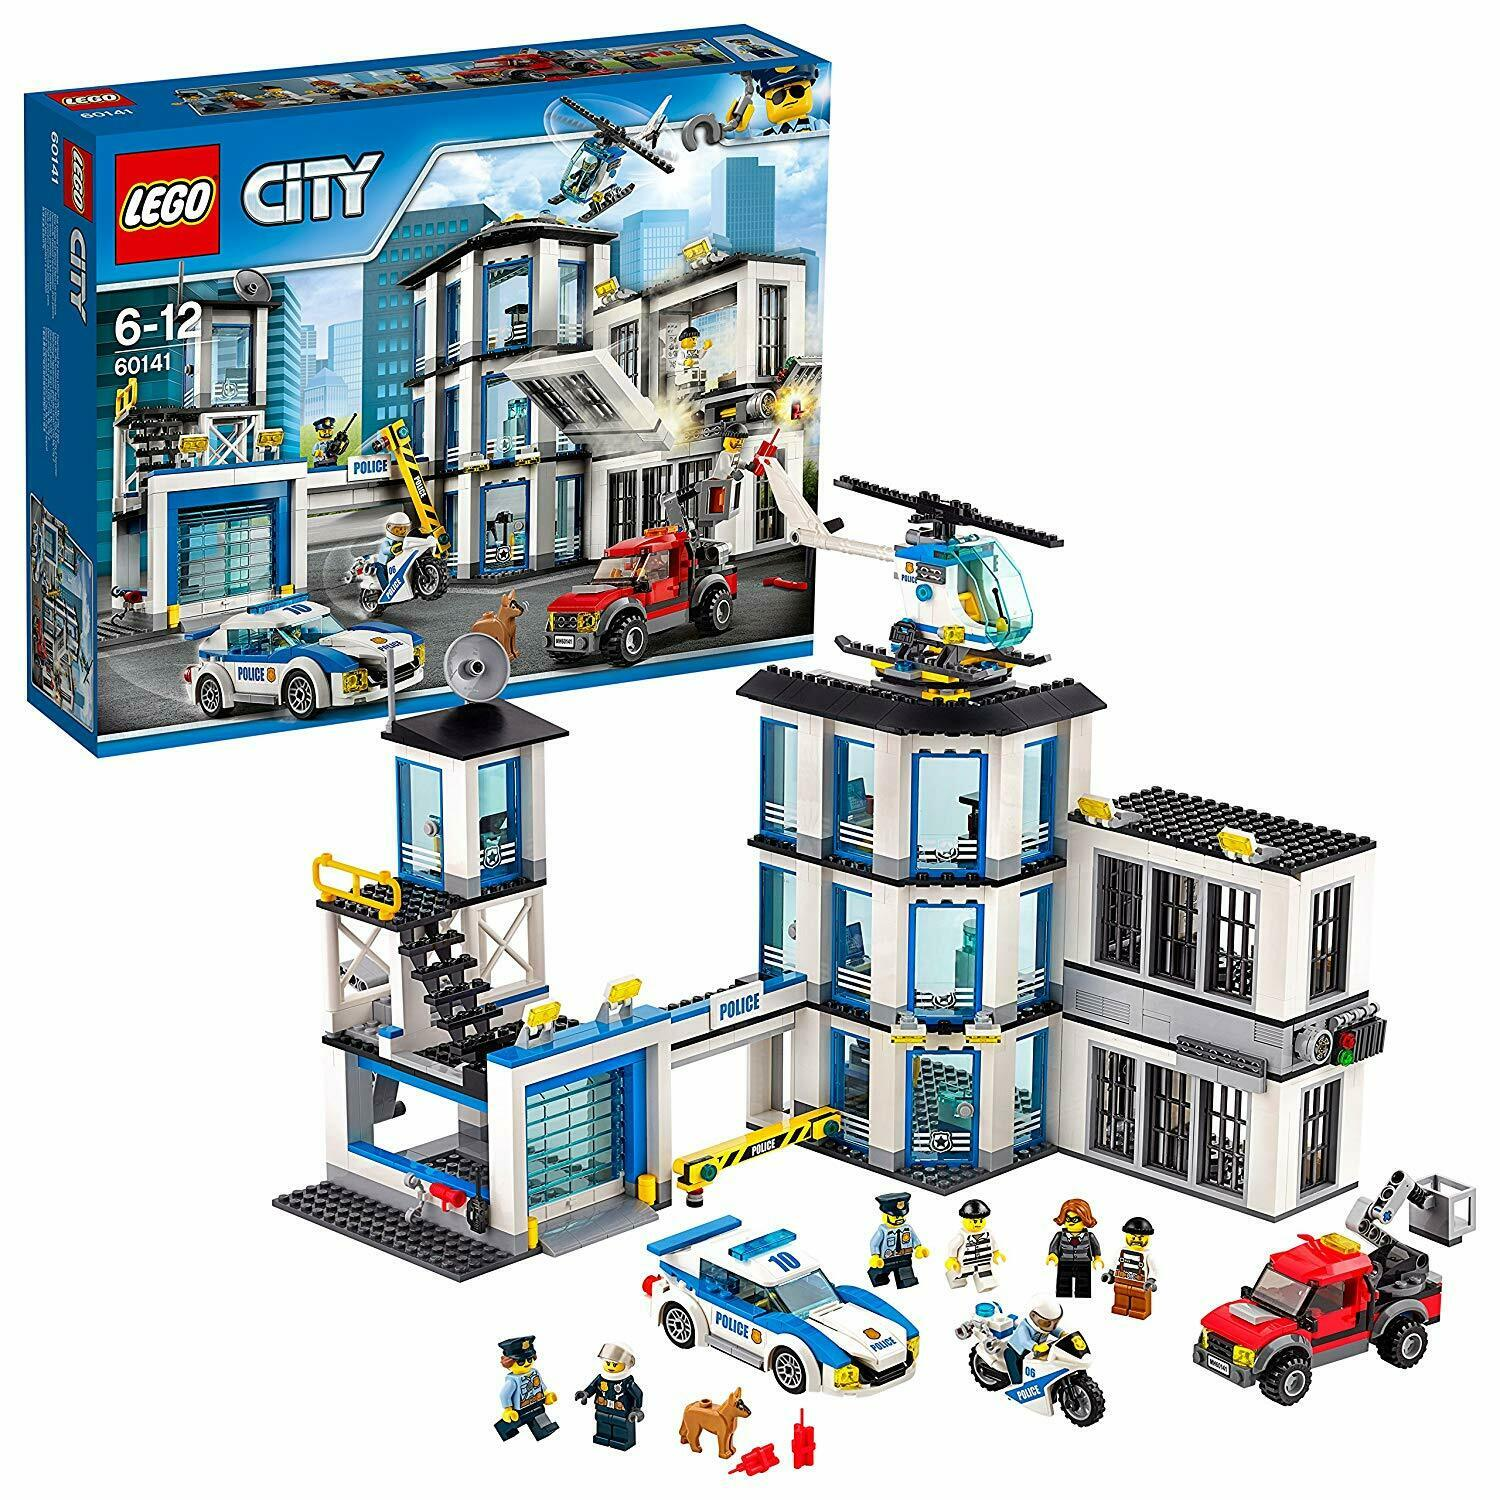 LEGO City Police Station Set Construction Build Cars Vehicles Fun Minifigures